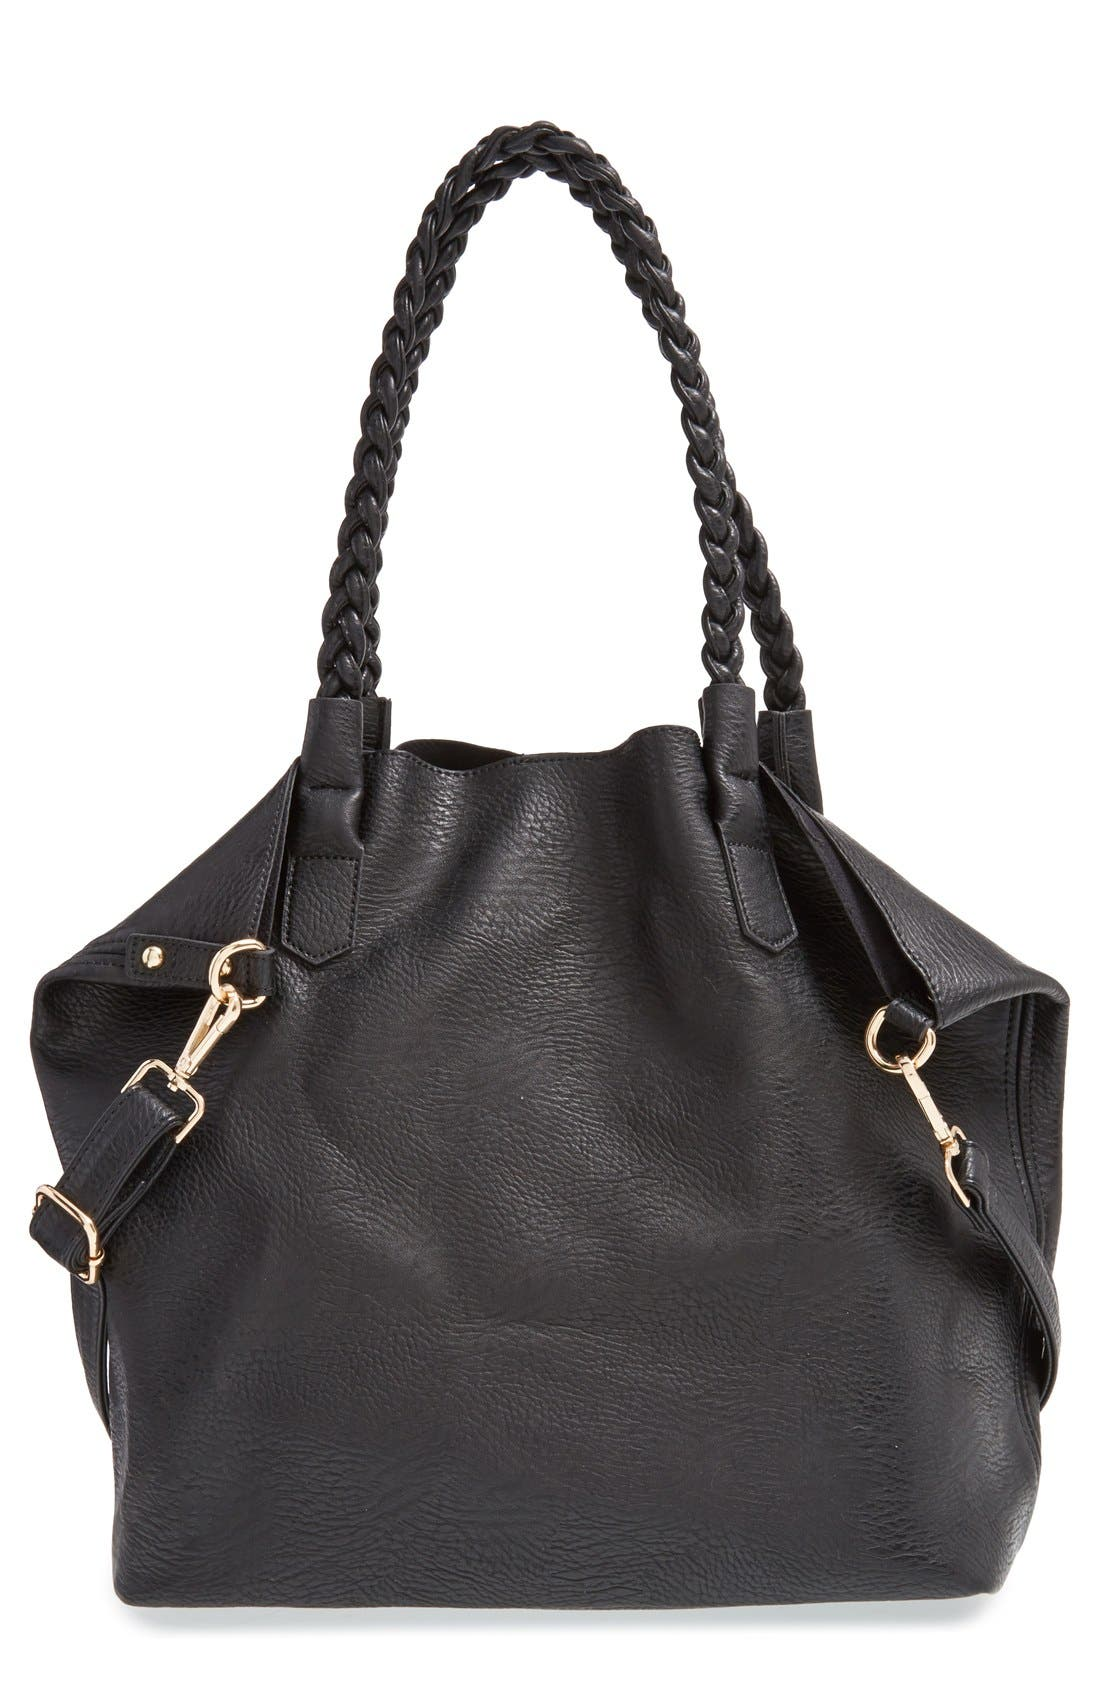 STREET LEVEL, Slouchy Faux Leather Tote with Pouch, Main thumbnail 1, color, 001